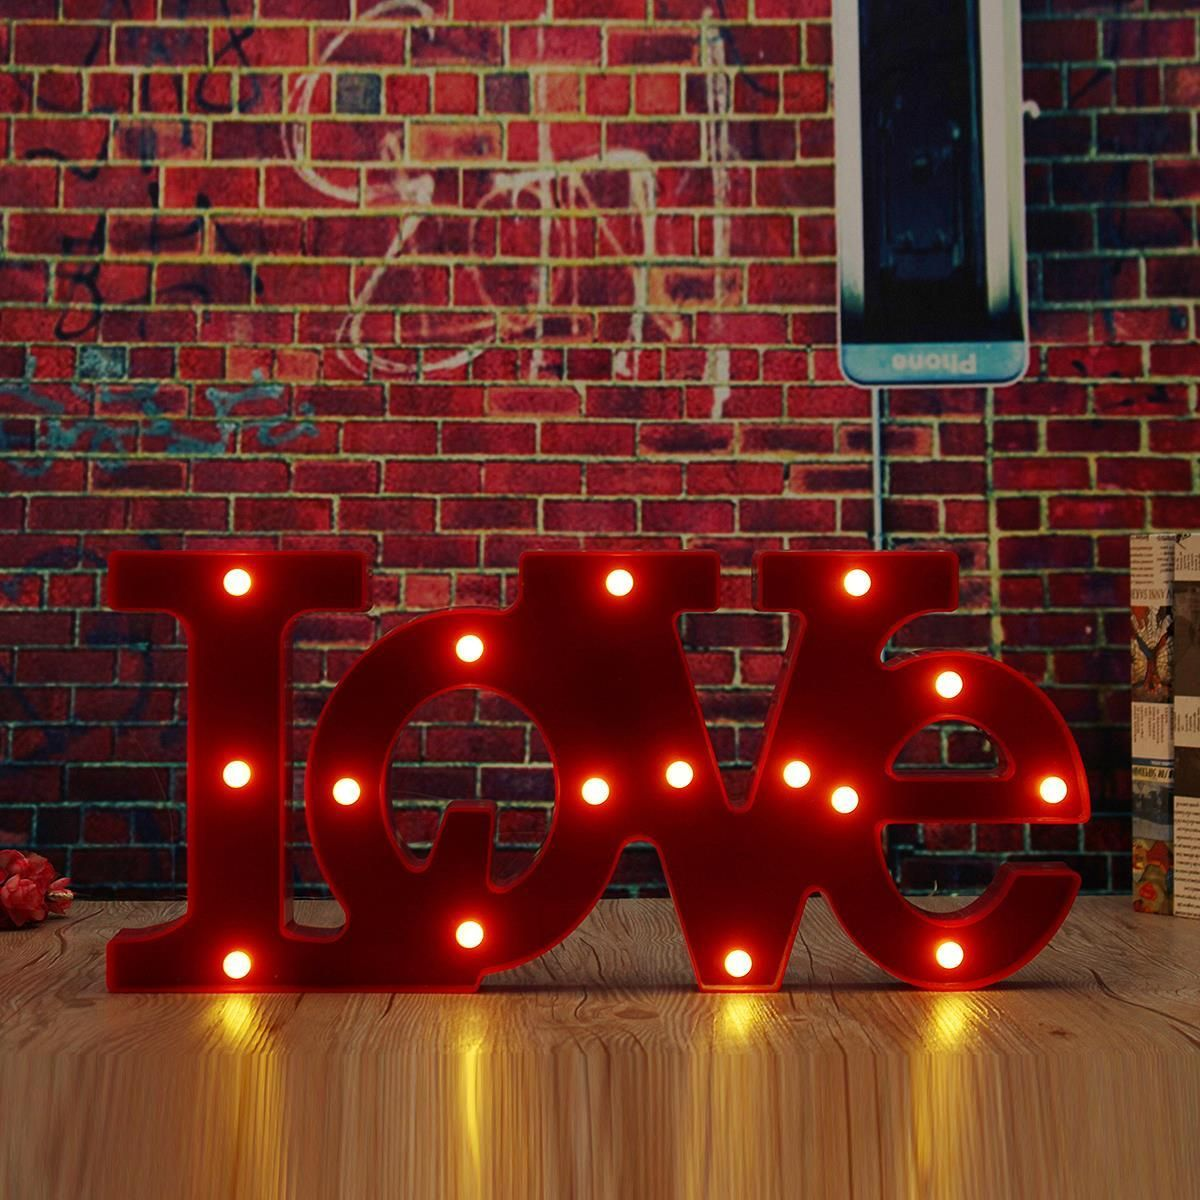 Gifts For Wedding Night: Wall Mounted LOVE LED Sign Lamp Lighted Letters Stand Red